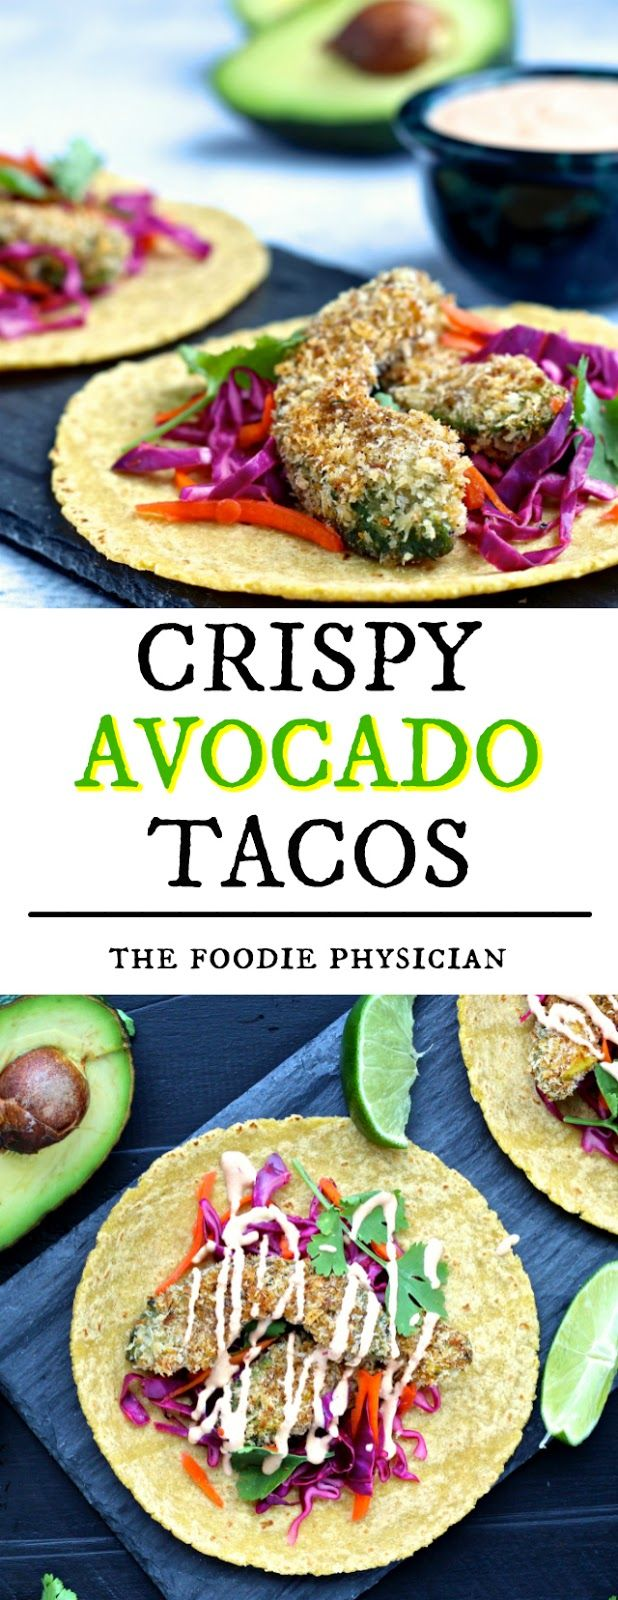 Crispy Avocado Tacos. Featuring baked avocado fries, these hearty vegetarian…